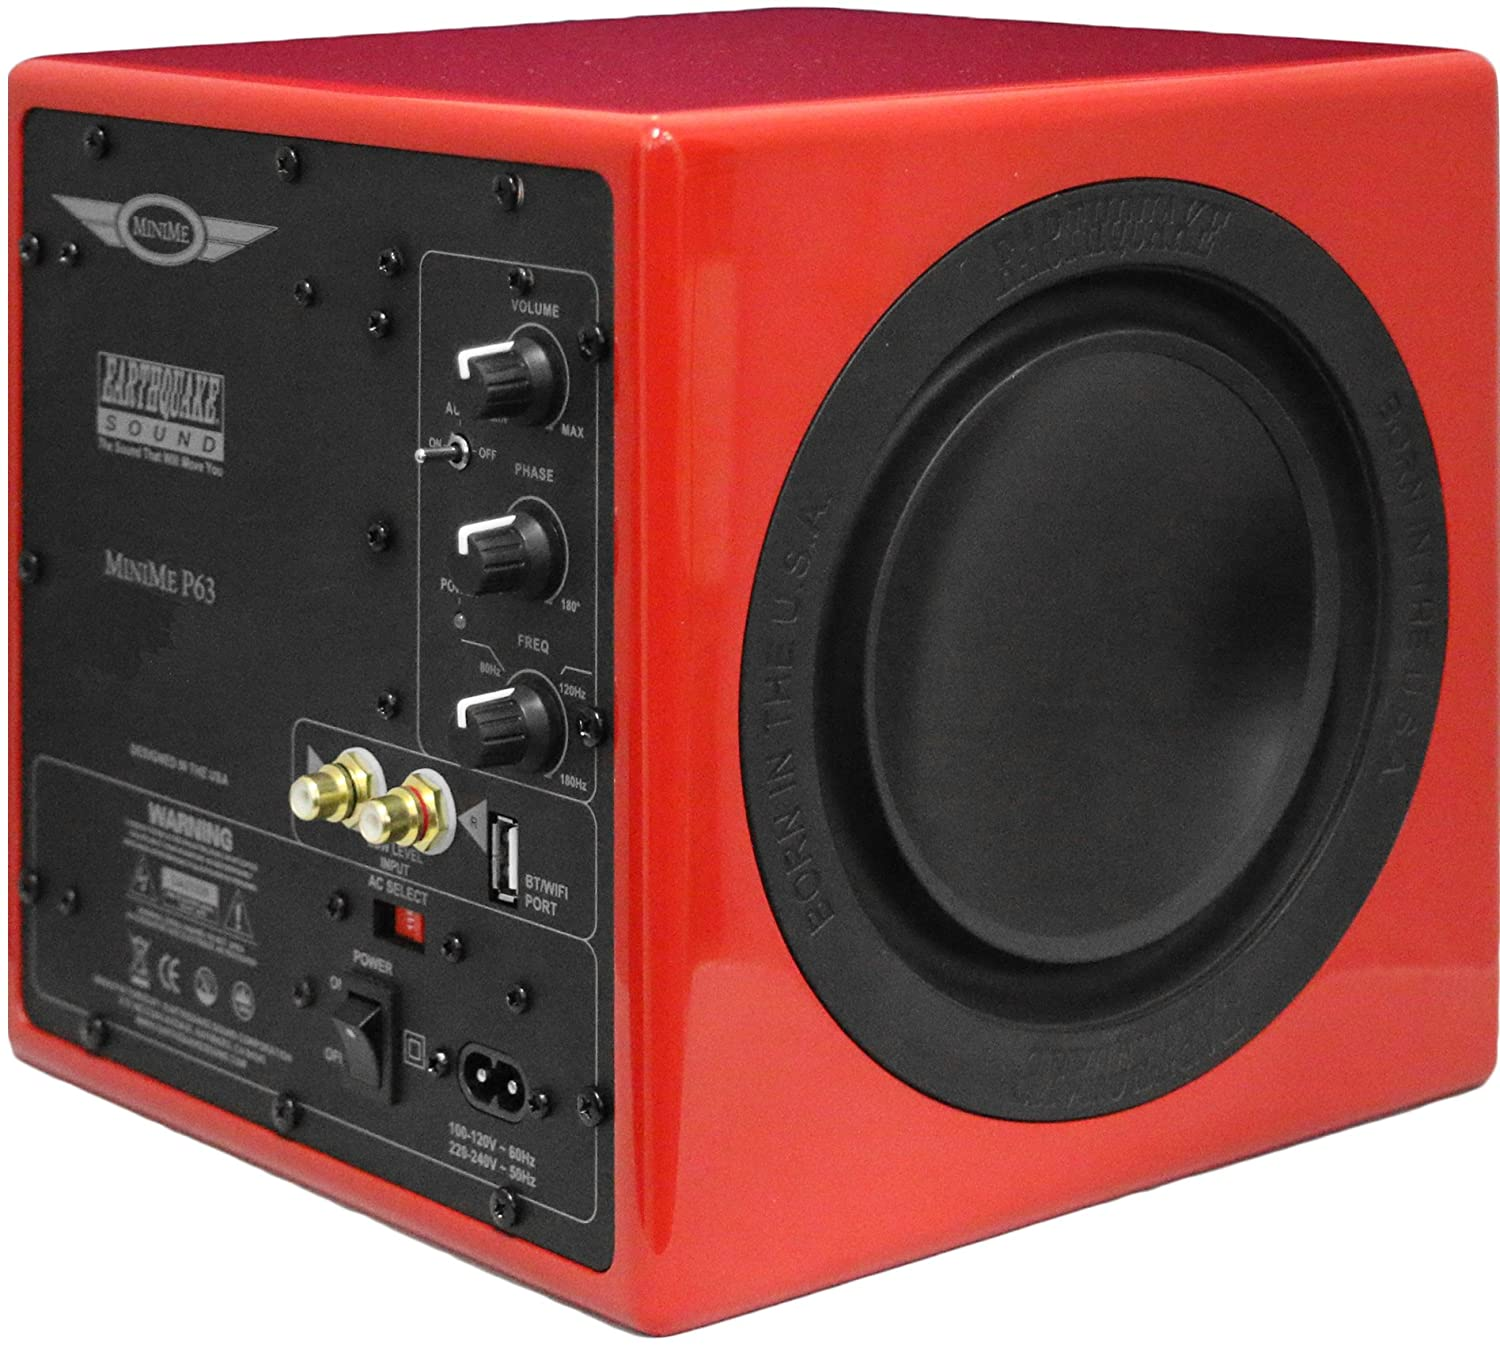 Earthquake Sound MiniMe-P63 Compact 6.5-inch Powered Subwoofer with Dual Passive Radiators, Red